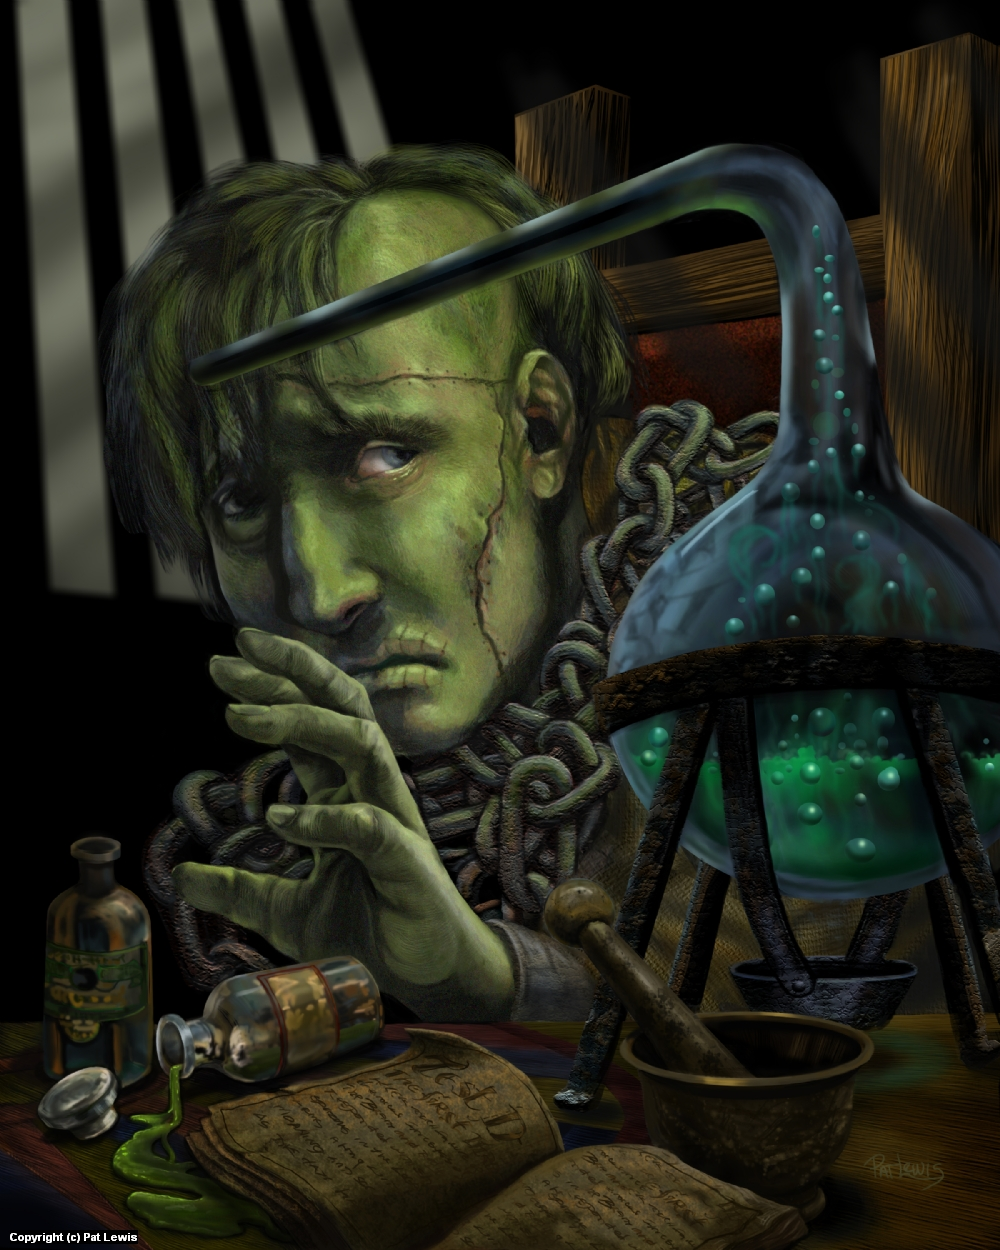 Frankenstein's tragic creation Artwork by Pat morrissey-Lewis